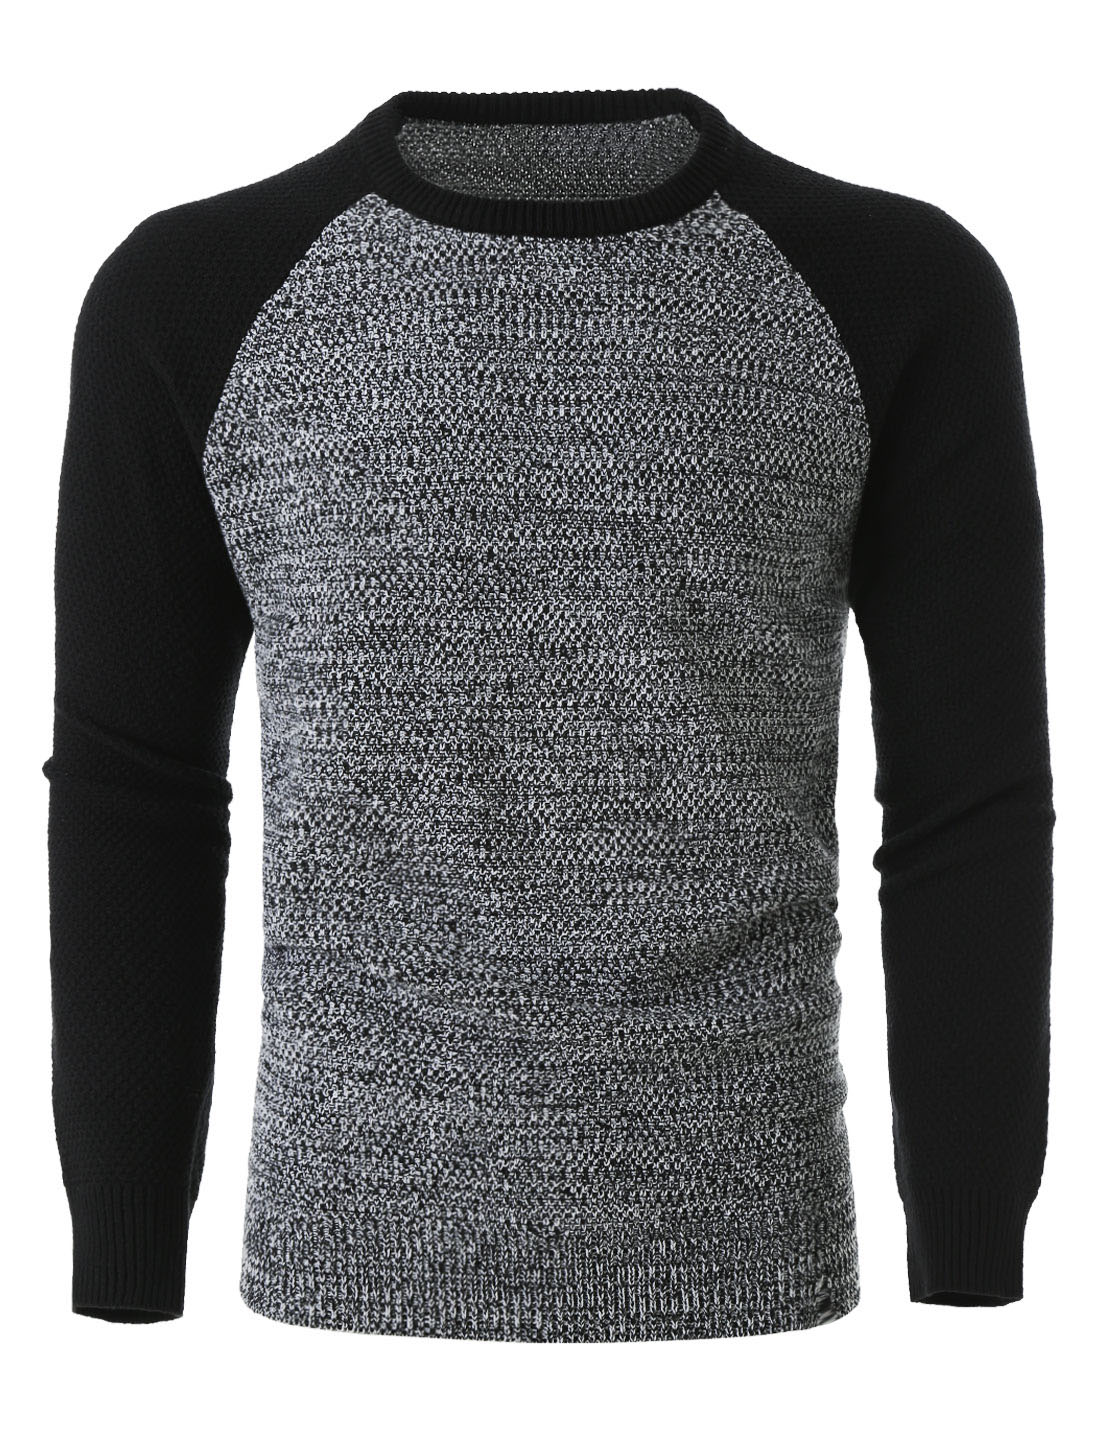 Men Colorblock Lightweight Long Sleeve Crewneck Pullover Knit Sweater Grey L